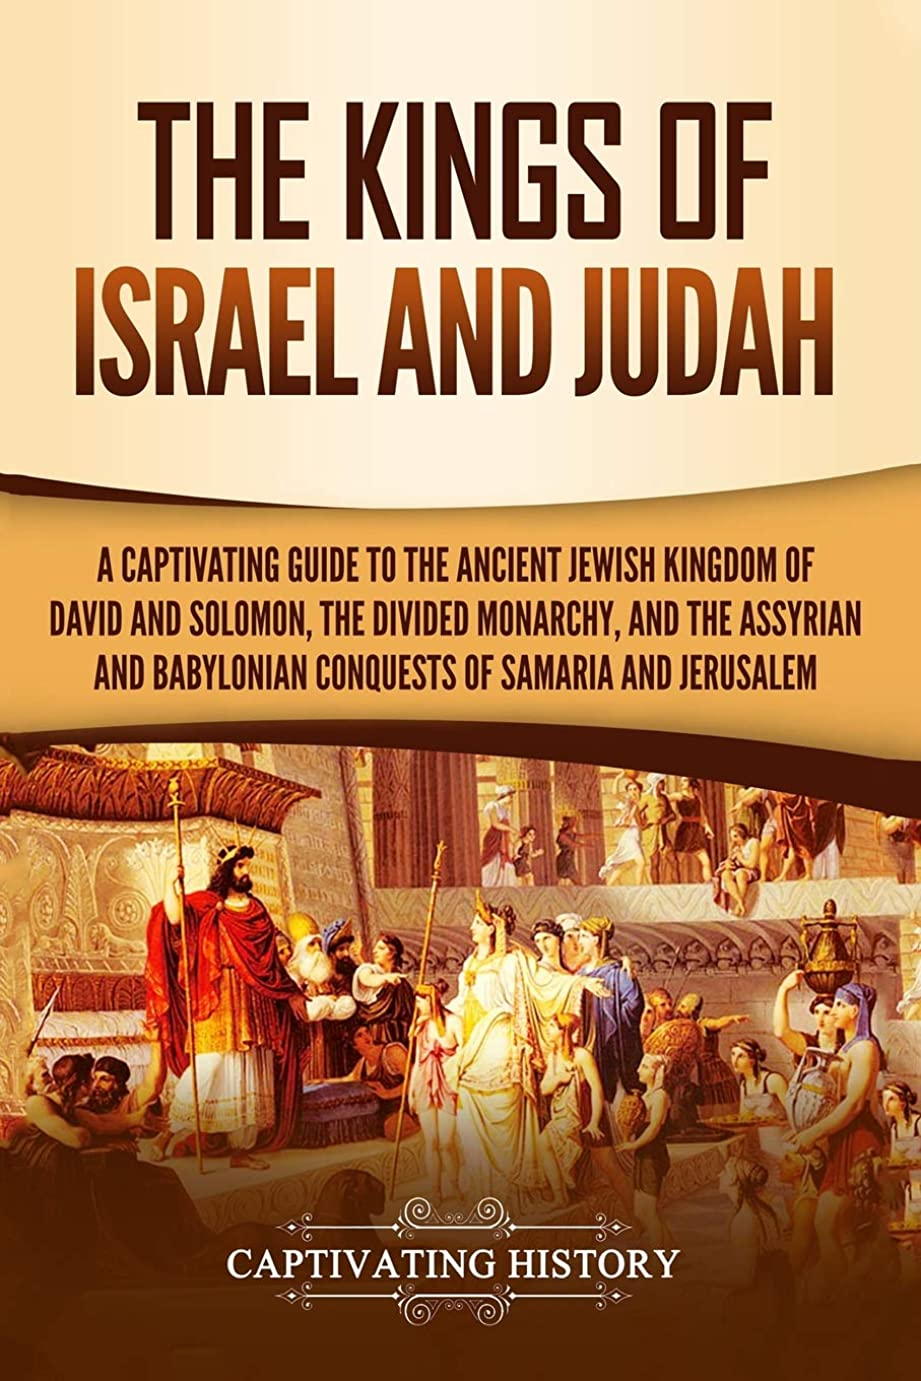 精査するマーチャンダイジング兵士The Kings of Israel and Judah: A Captivating Guide to the Ancient Jewish Kingdom of David and Solomon, the Divided Monarchy, and the Assyrian and Babylonian Conquests of Samaria and Jerusalem